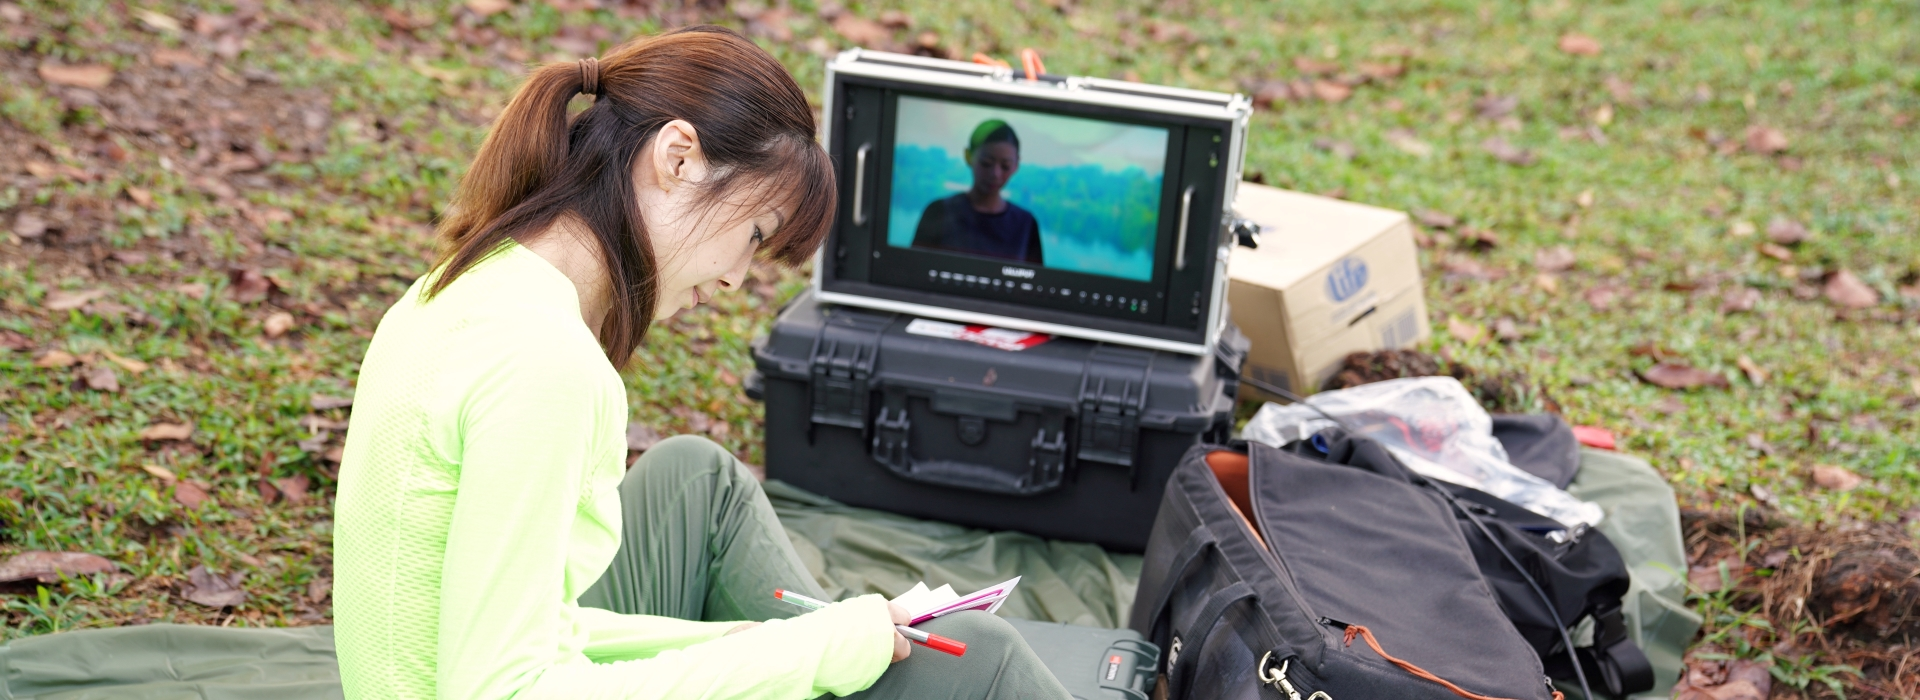 Jeanette Aw x Picturesque Films